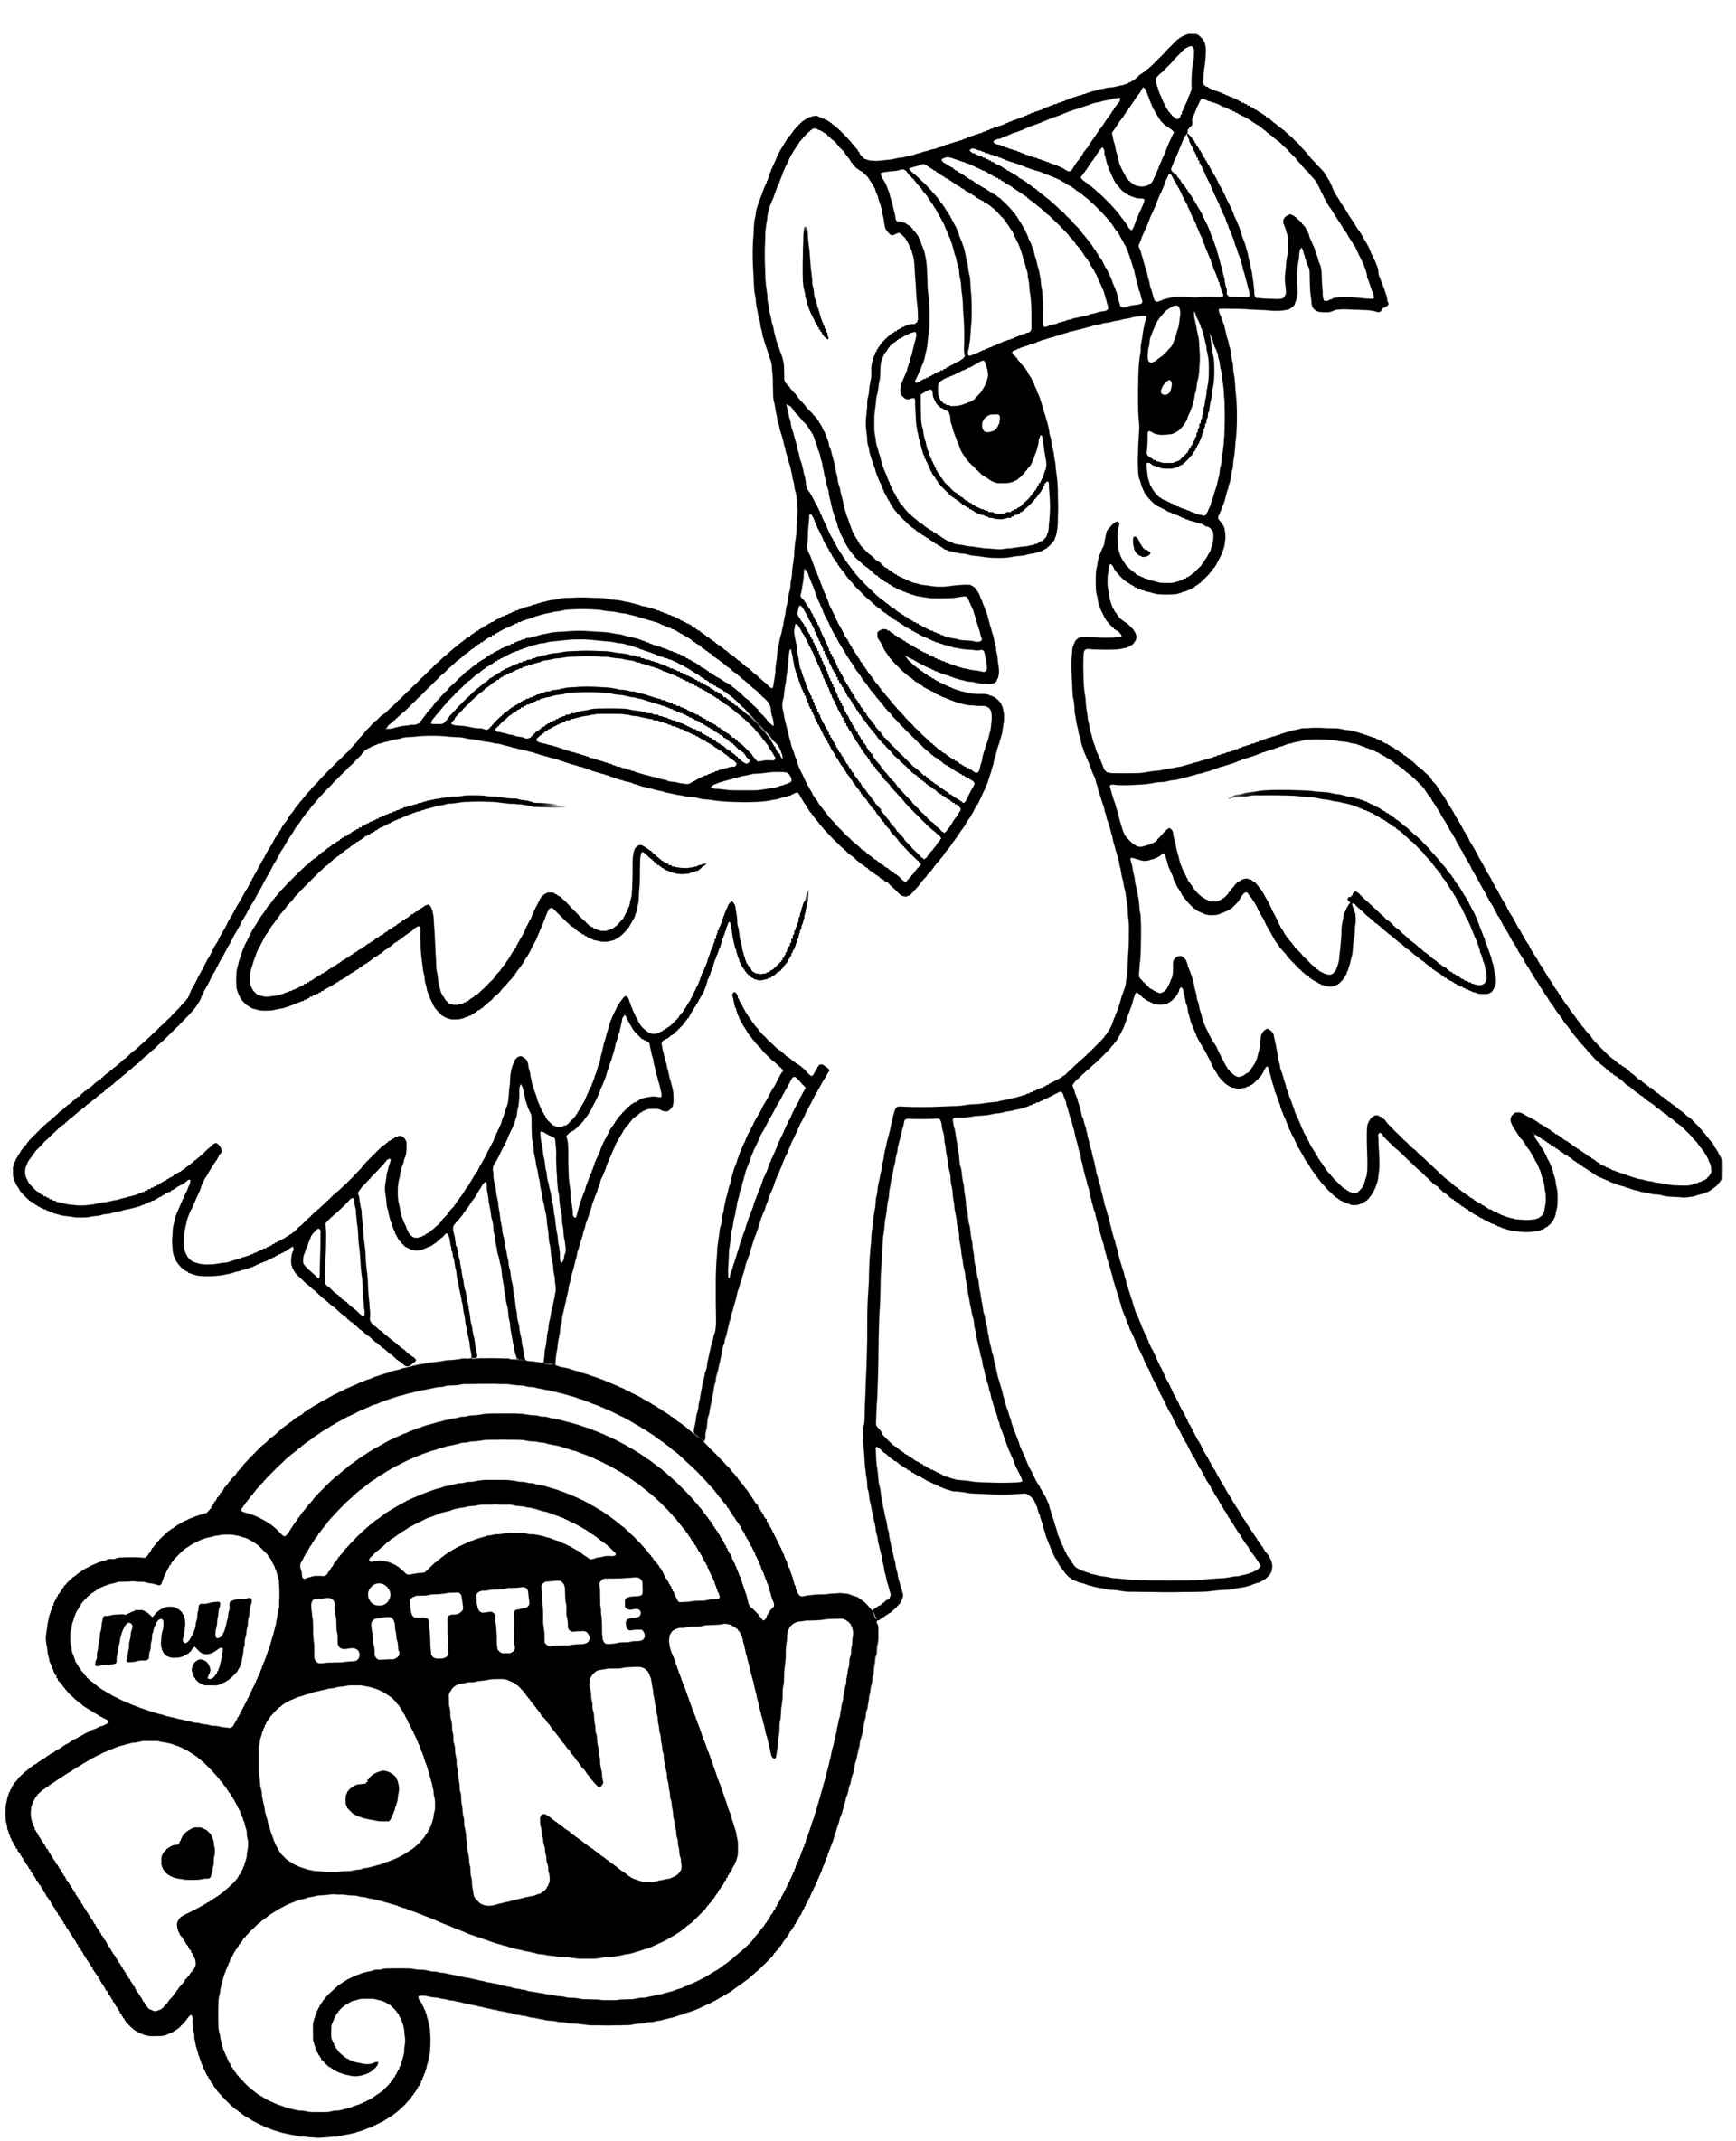 Image Of Pony Sparkle Spread Her Wings With The Logo